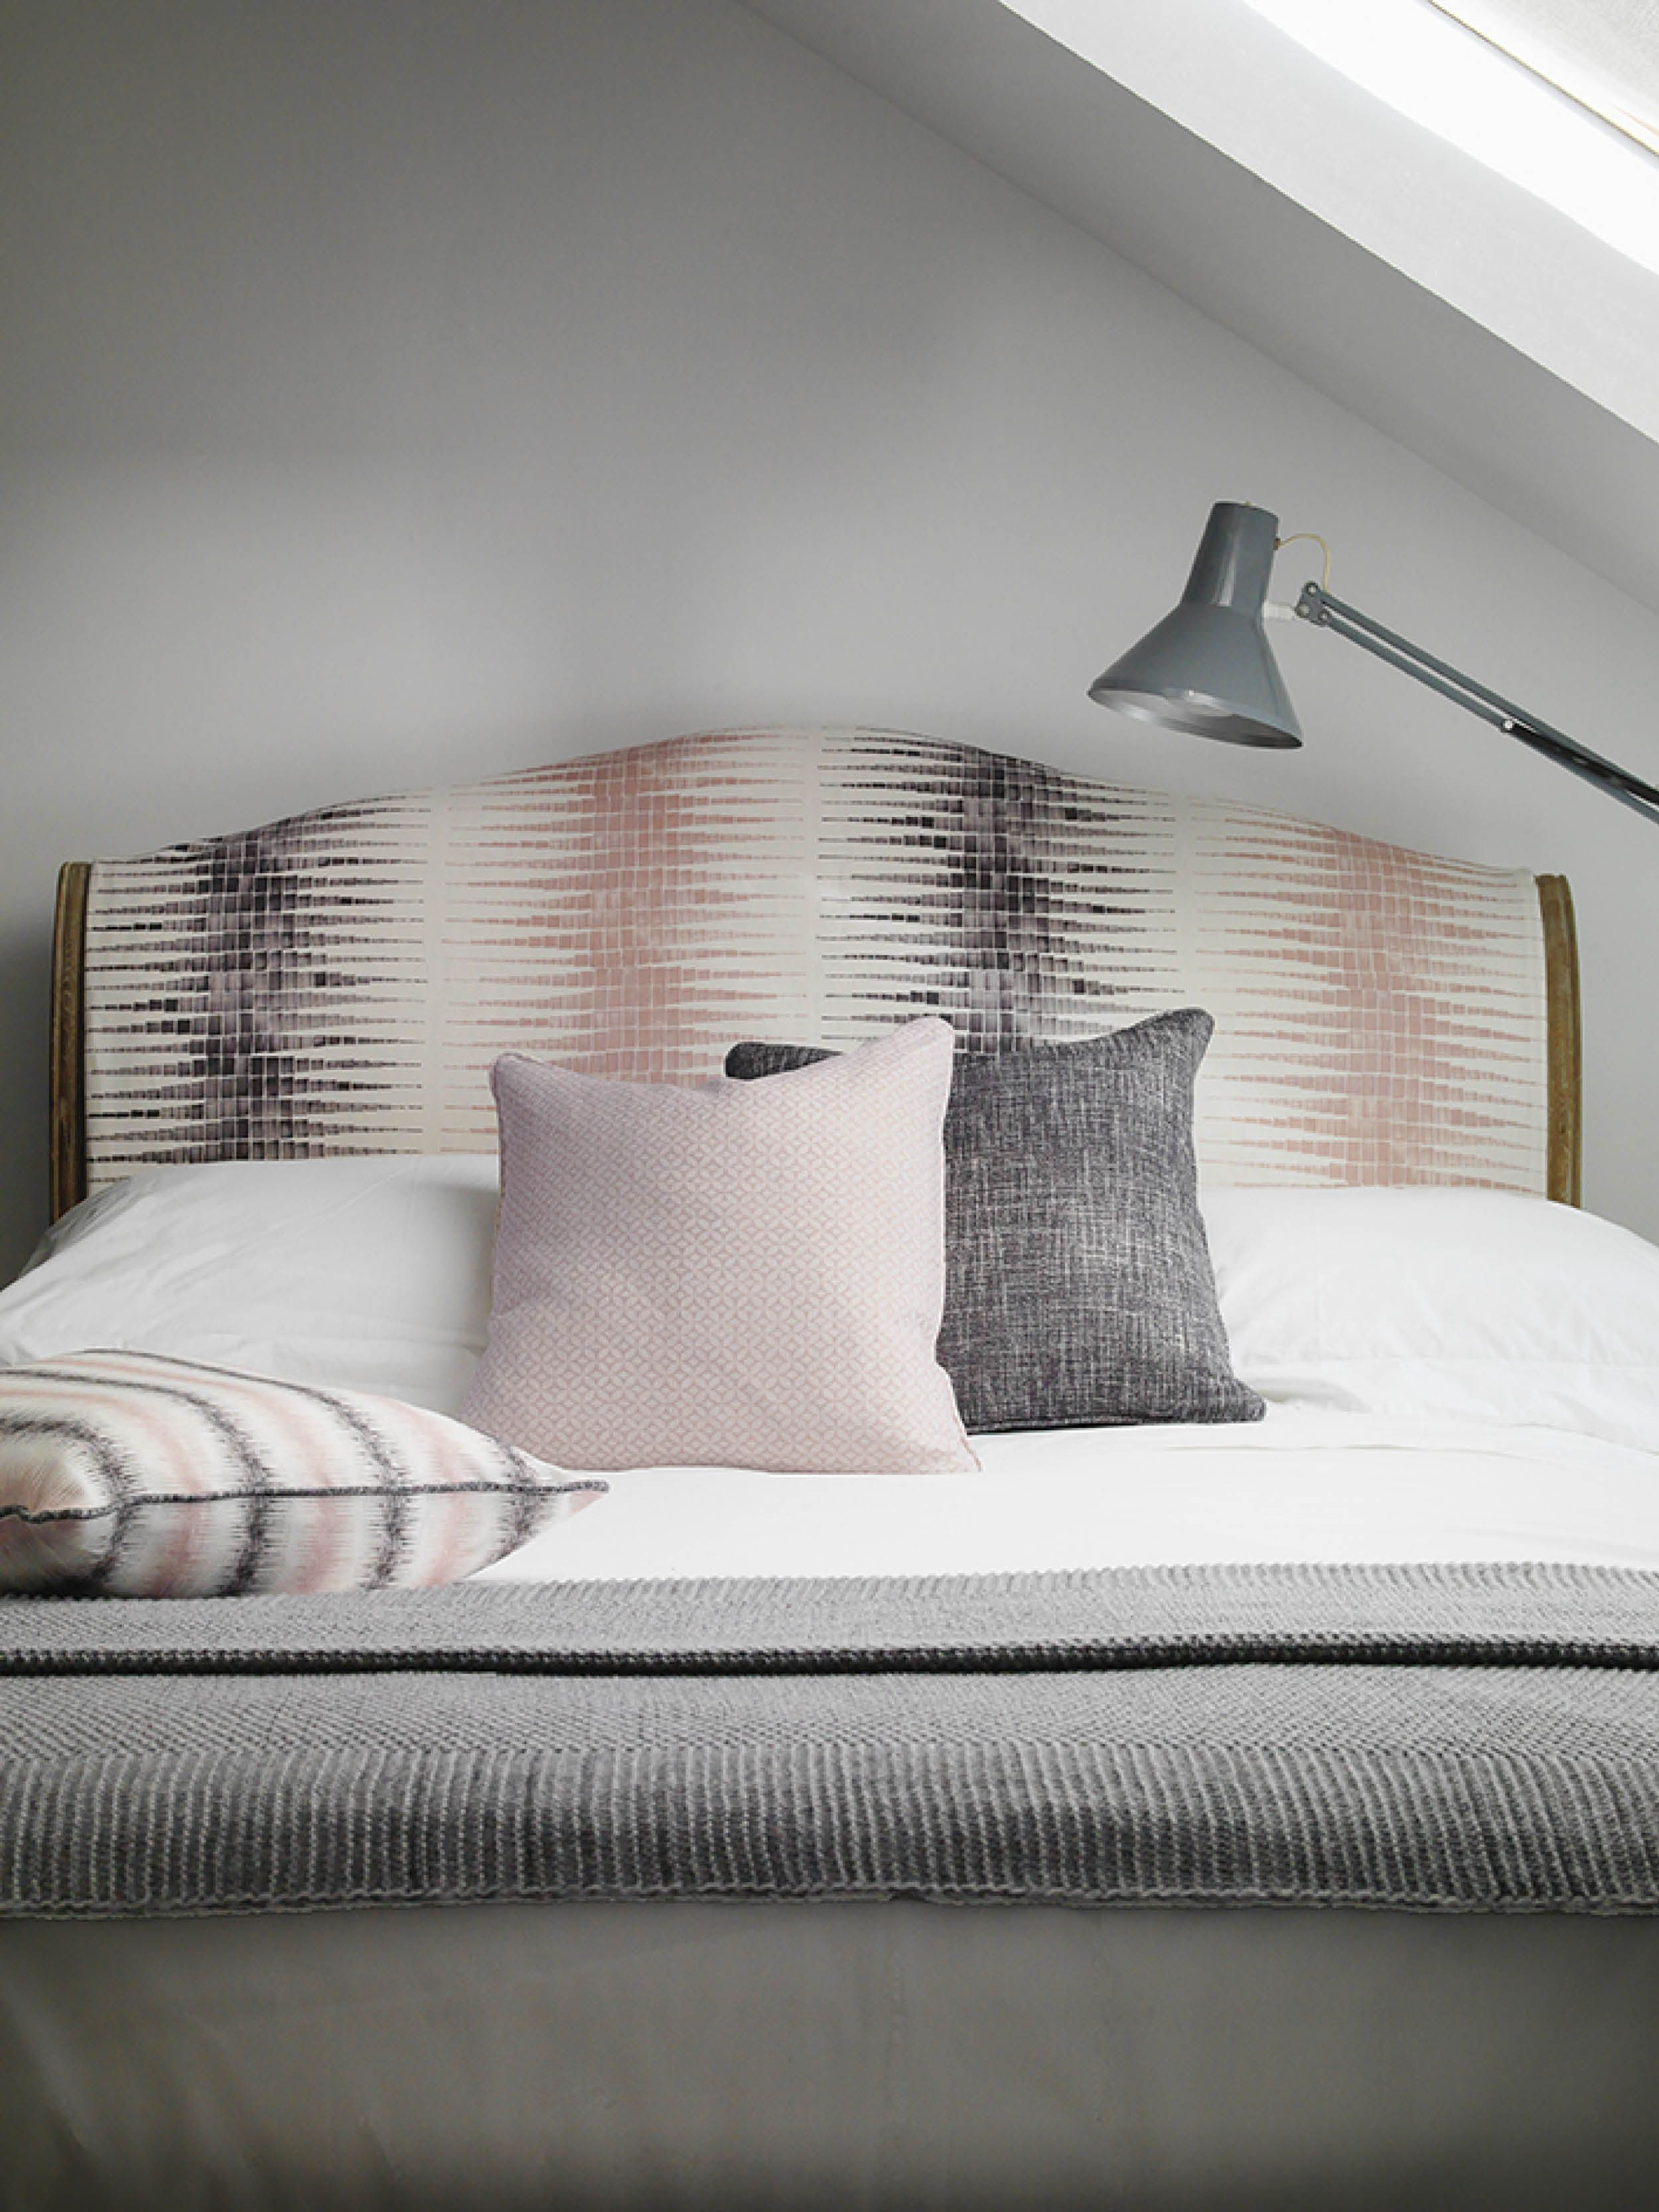 17 best images about Our bedroom on Pinterest